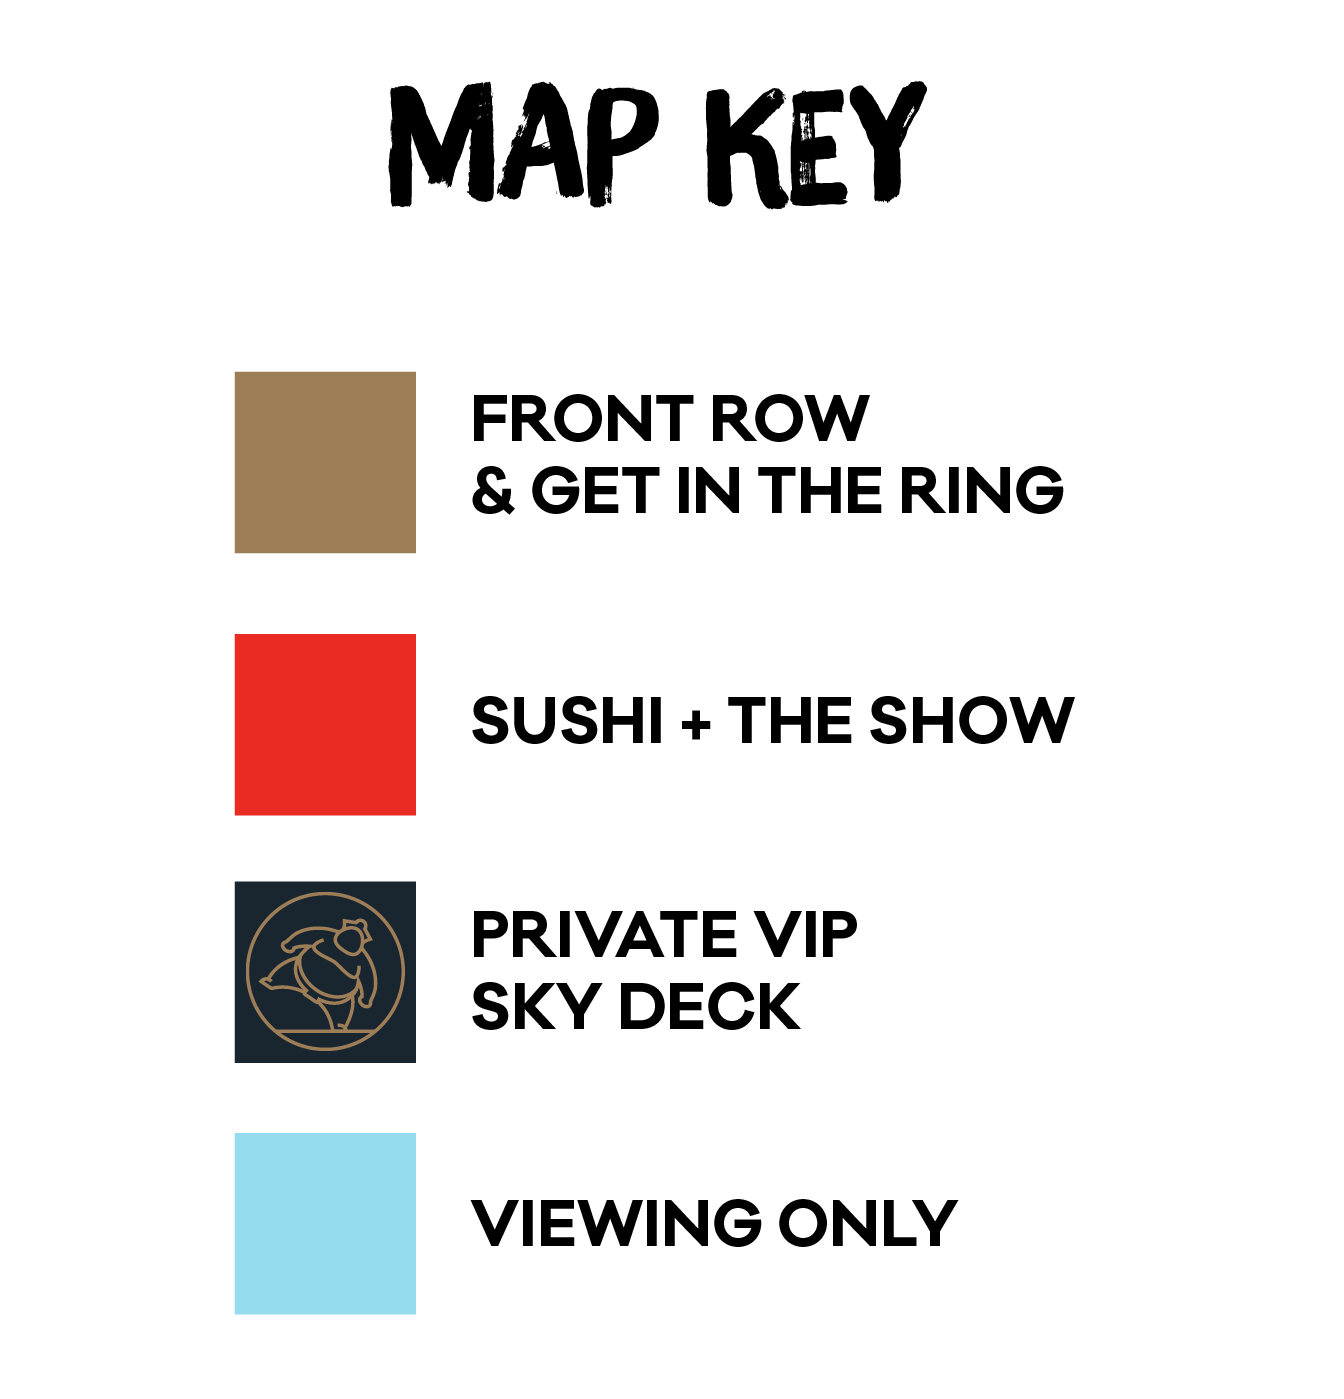 Sumo Floorplan with Key-02.png